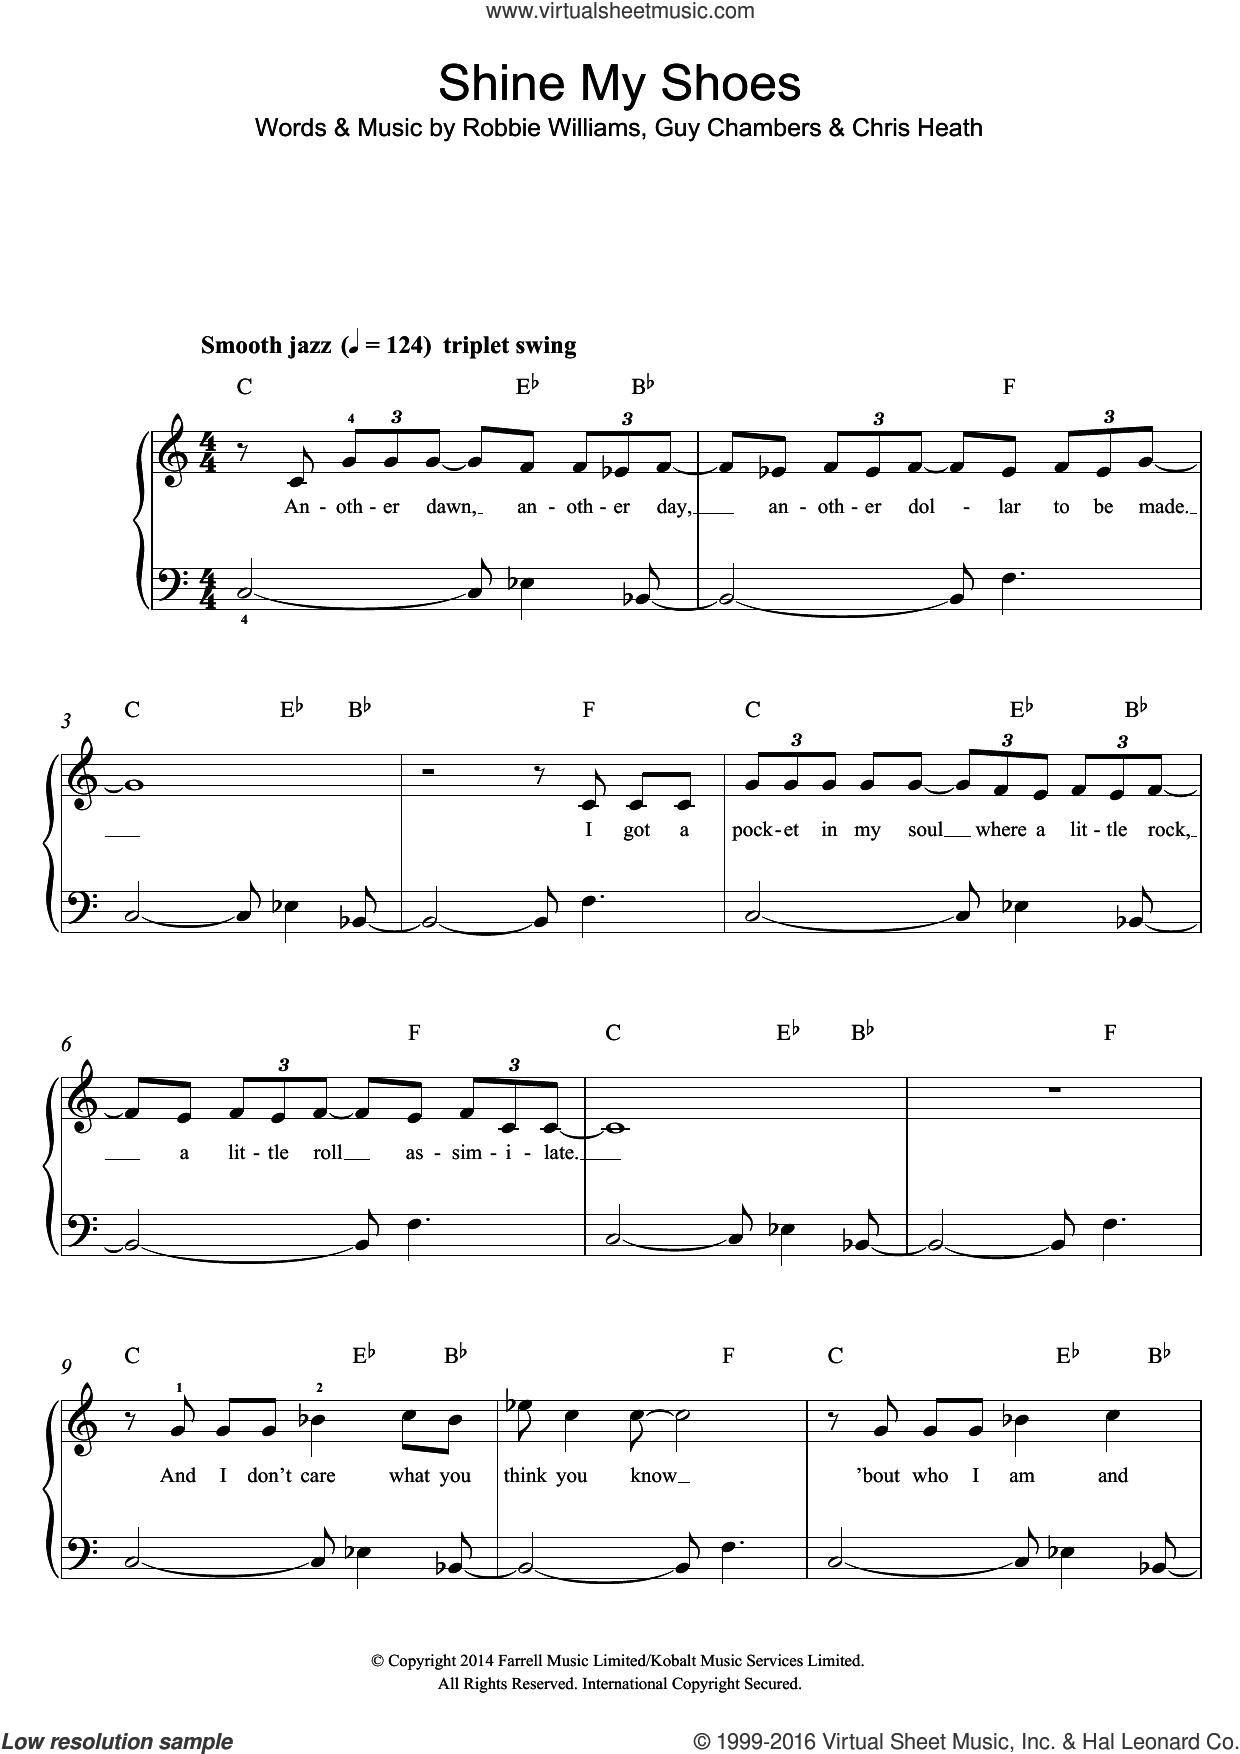 Shine My Shoes sheet music for piano solo by Robbie Williams, Chris Heath and Guy Chambers, easy skill level